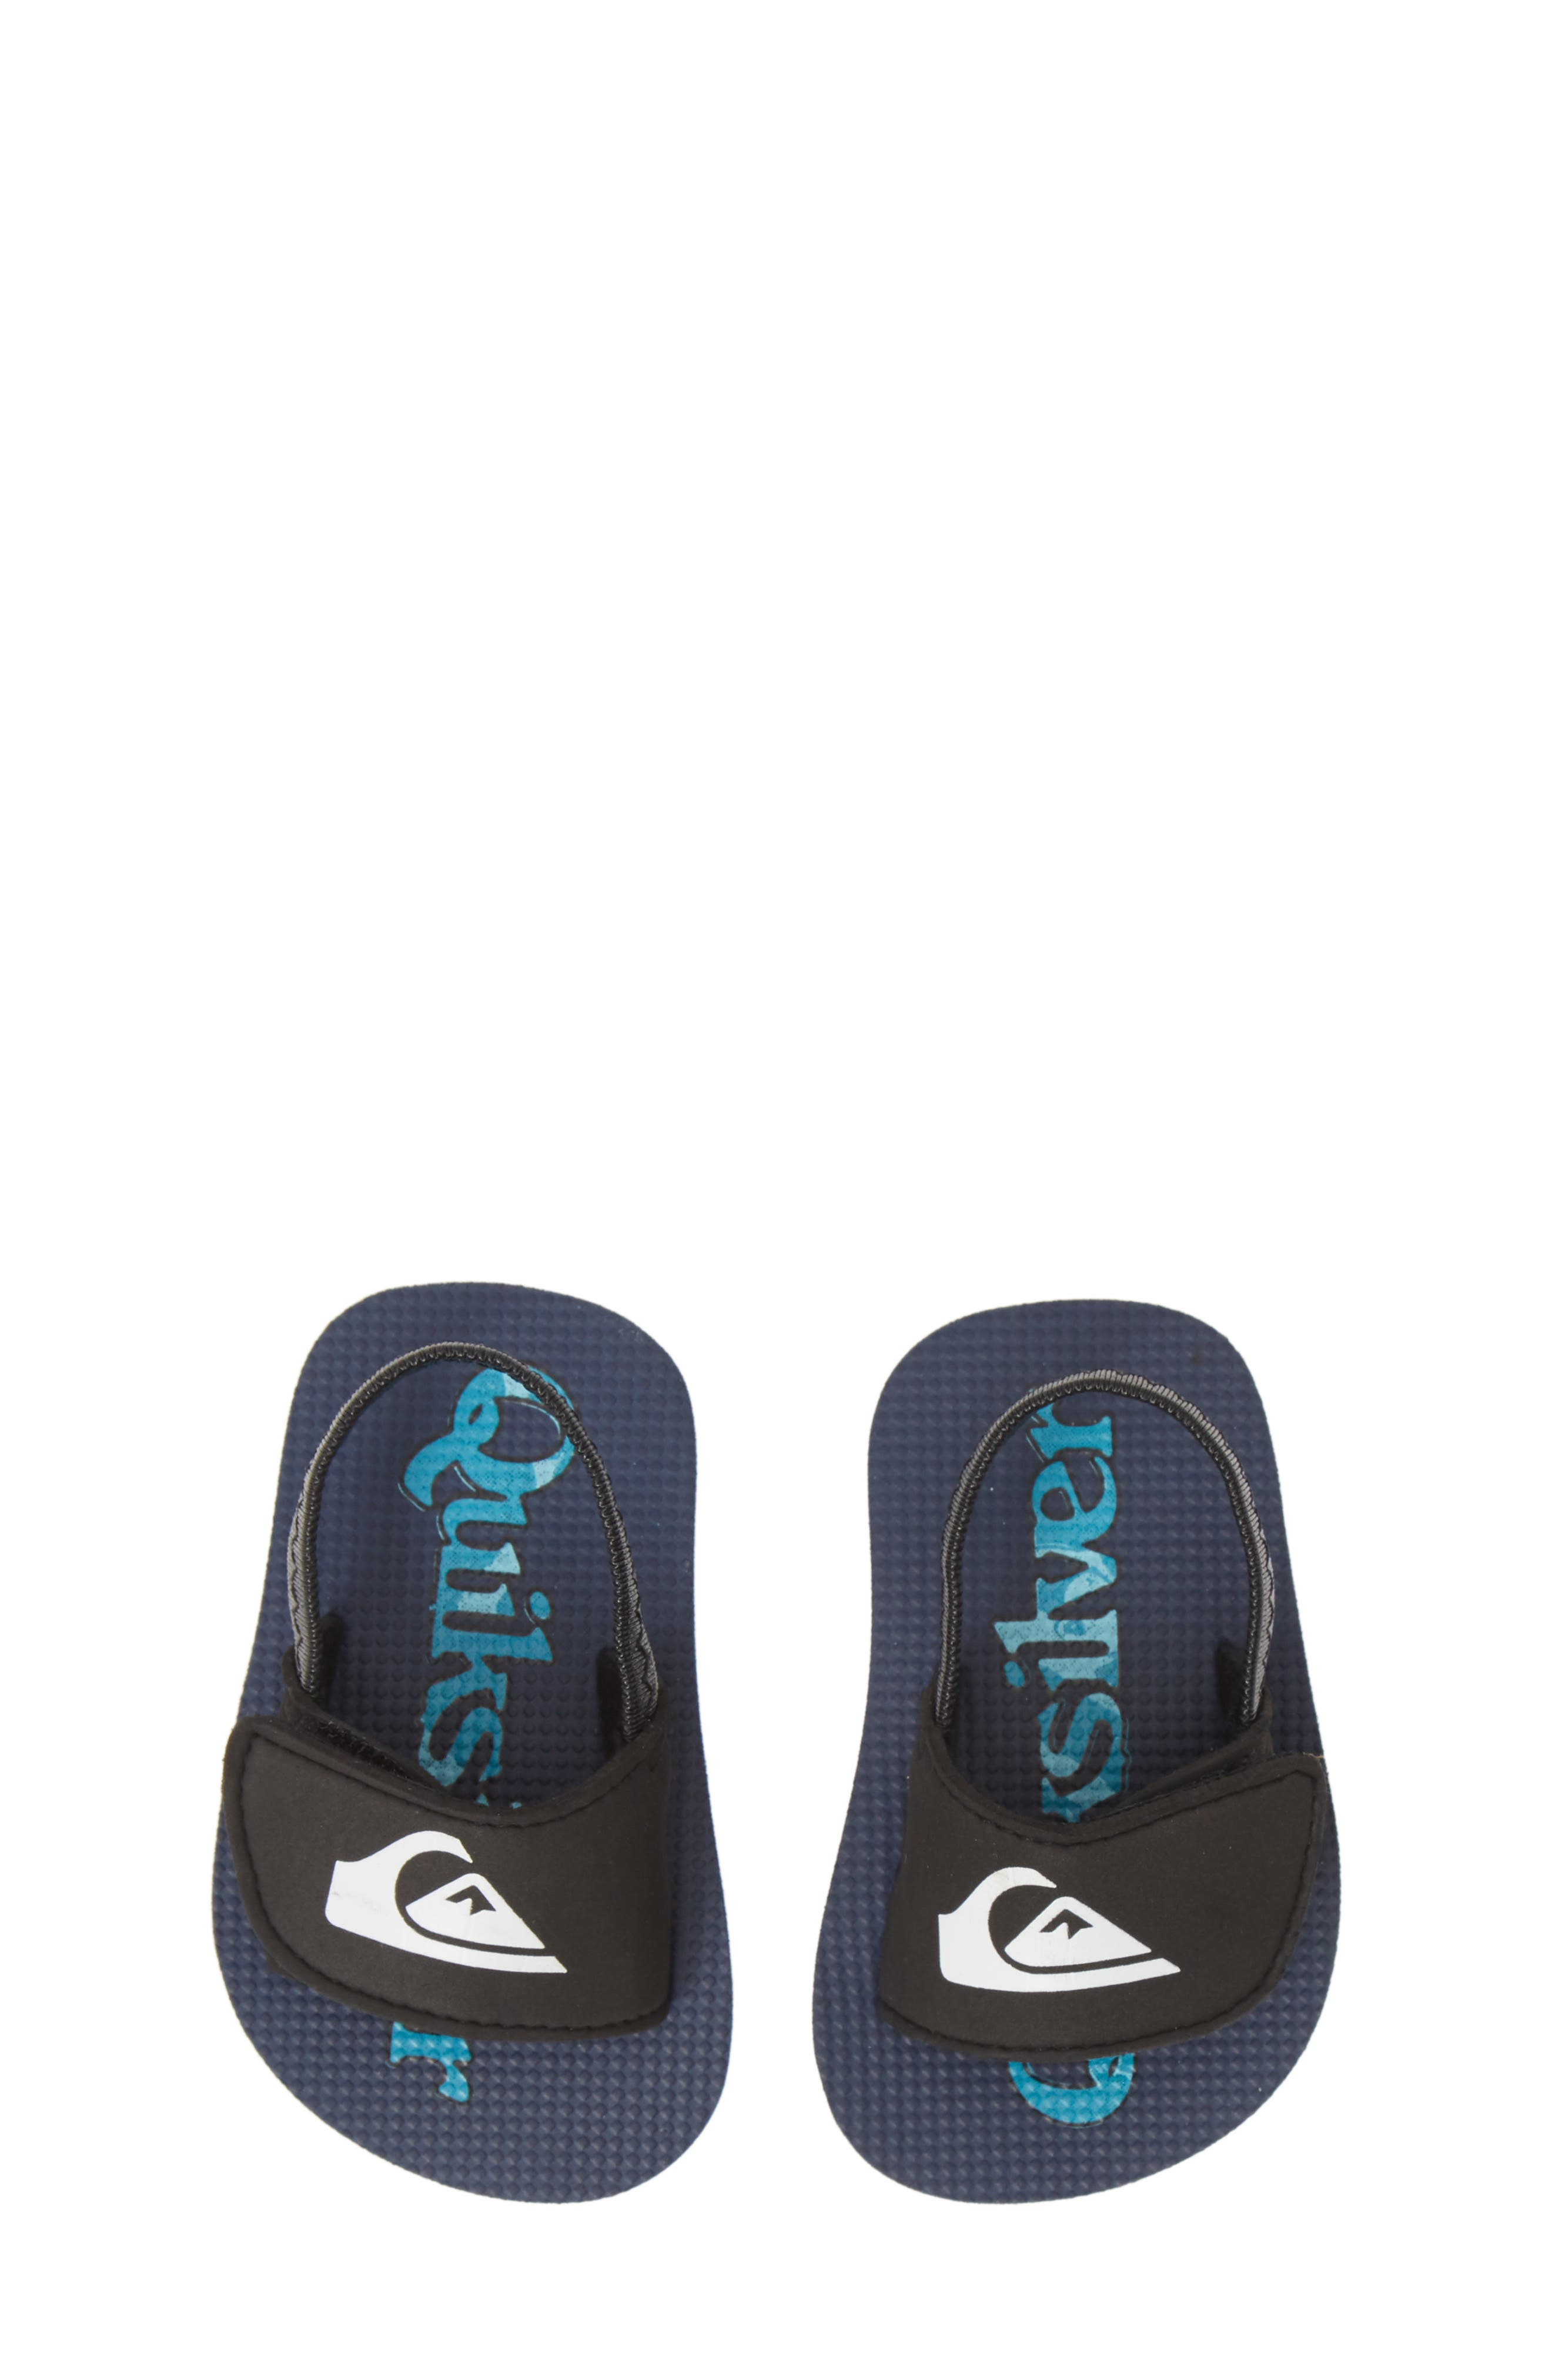 5222ebd05 Quiksilver for Kids